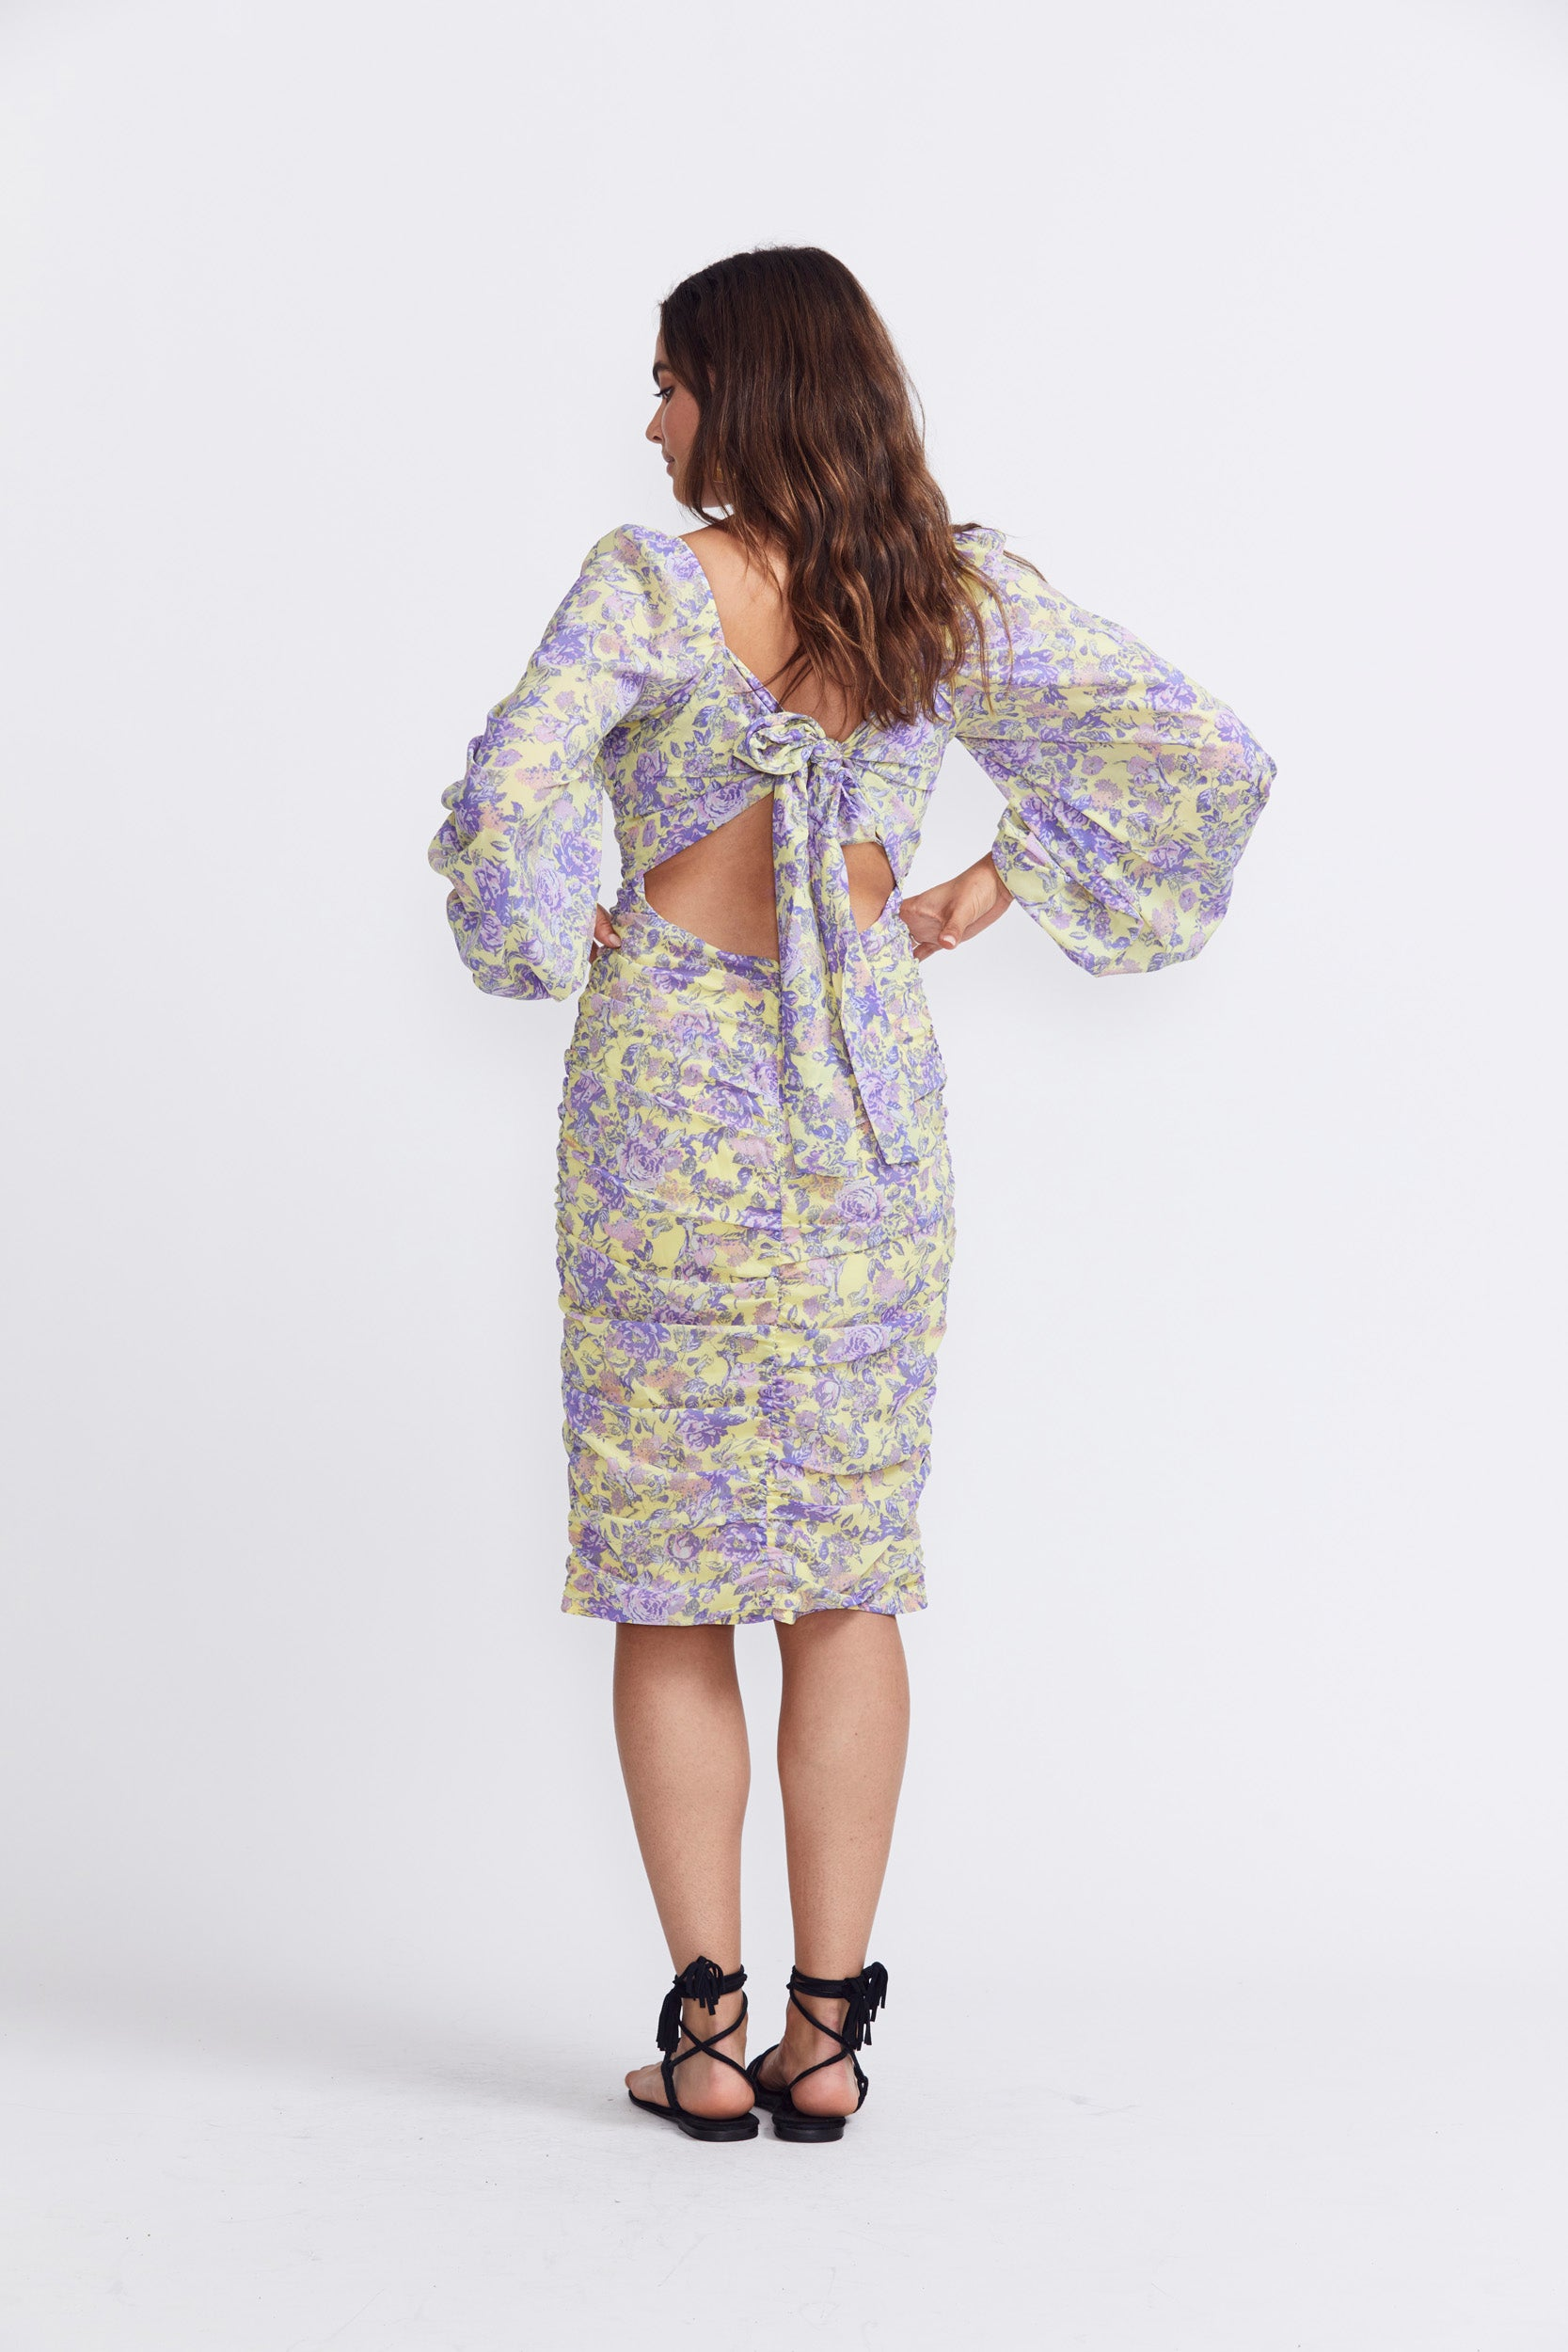 For Love & Lemons Maui Midi Dress - Yellow